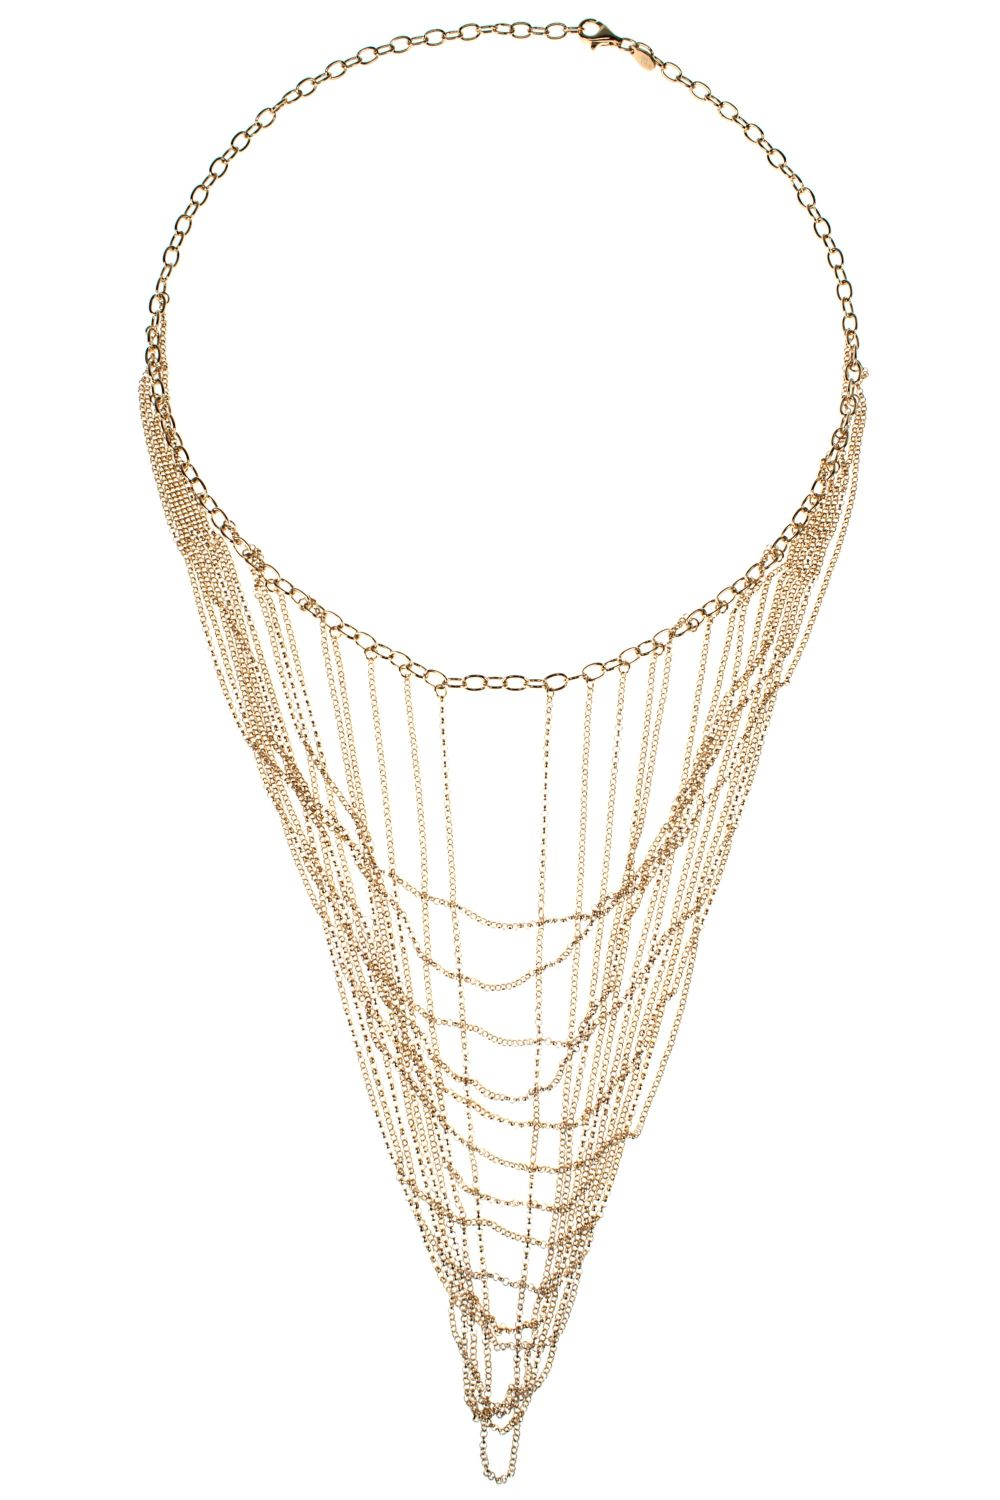 this gorgeous #necklace is a multitude of very fine chains looped up into the links of the main chain I NEWONE-SHOP.COM